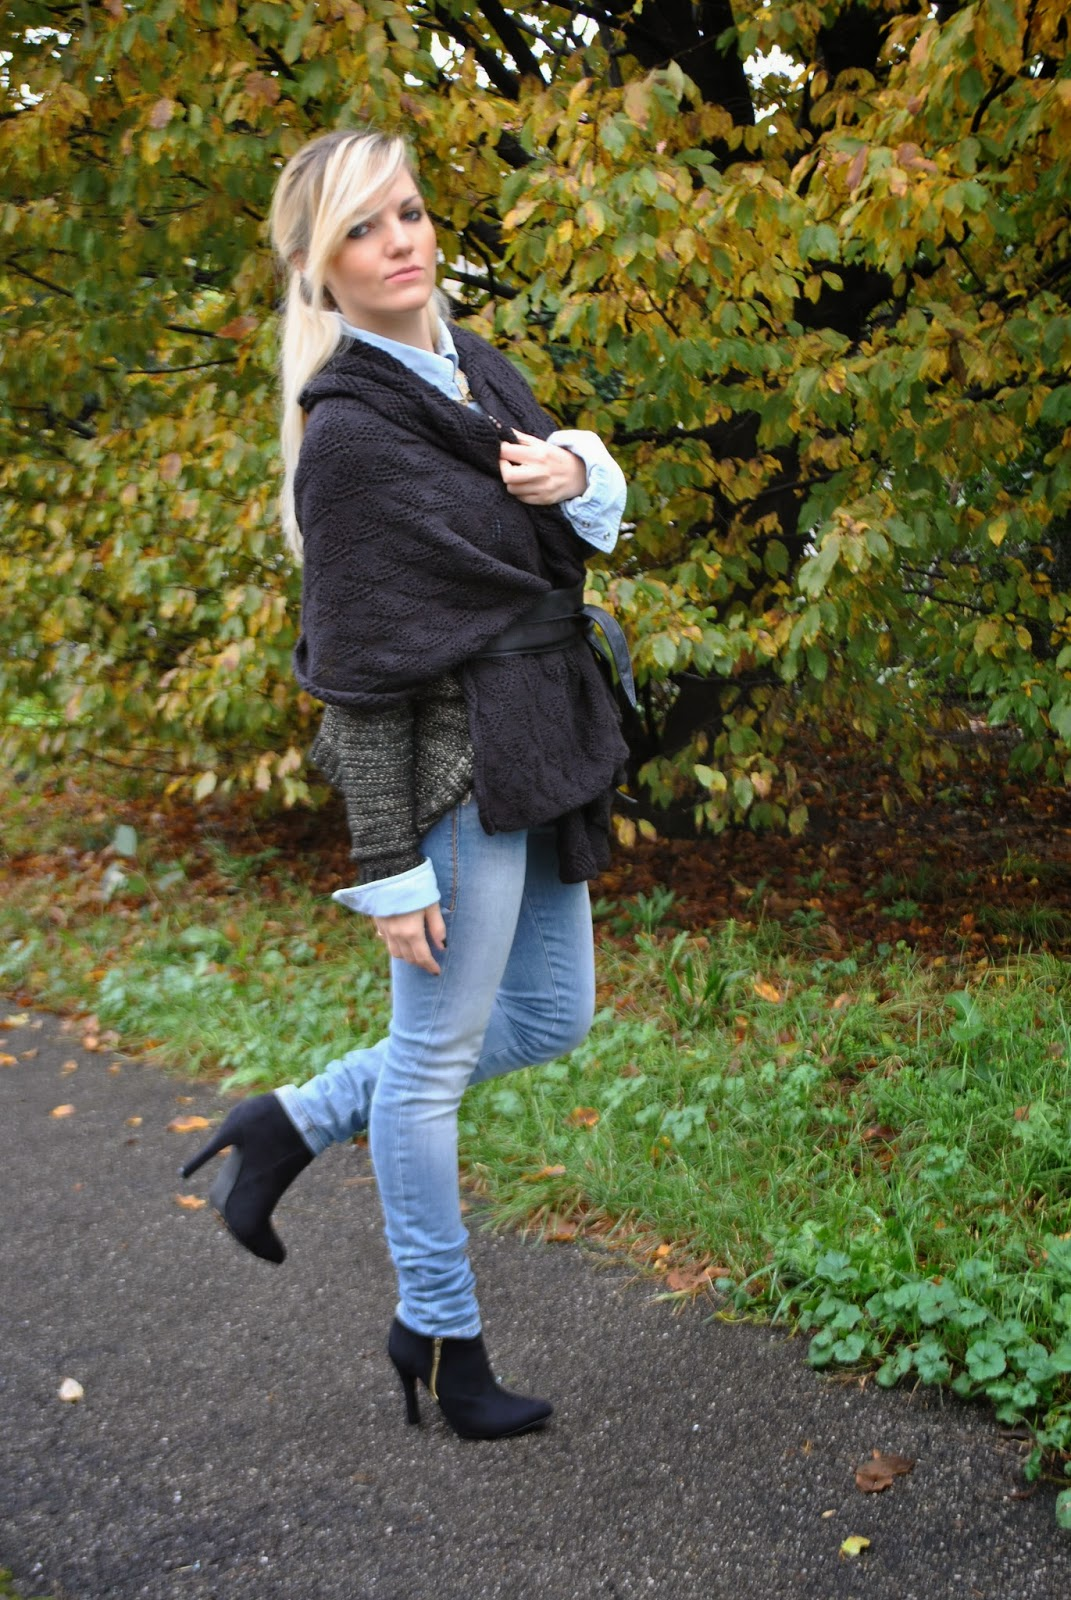 outfit mantella e jeans collana etnica azteca majique london majique london gioielli cape how to wear cape abbinamenti mantella come abbinamenti mantella autumnal outfits  outfit autunnali outfit mariafelicia magno mariafelicia magno fashion blogger italian girls ragazze italiane fahsion blogger bionde ragazze bionde blonde girls fashion bloggers italy